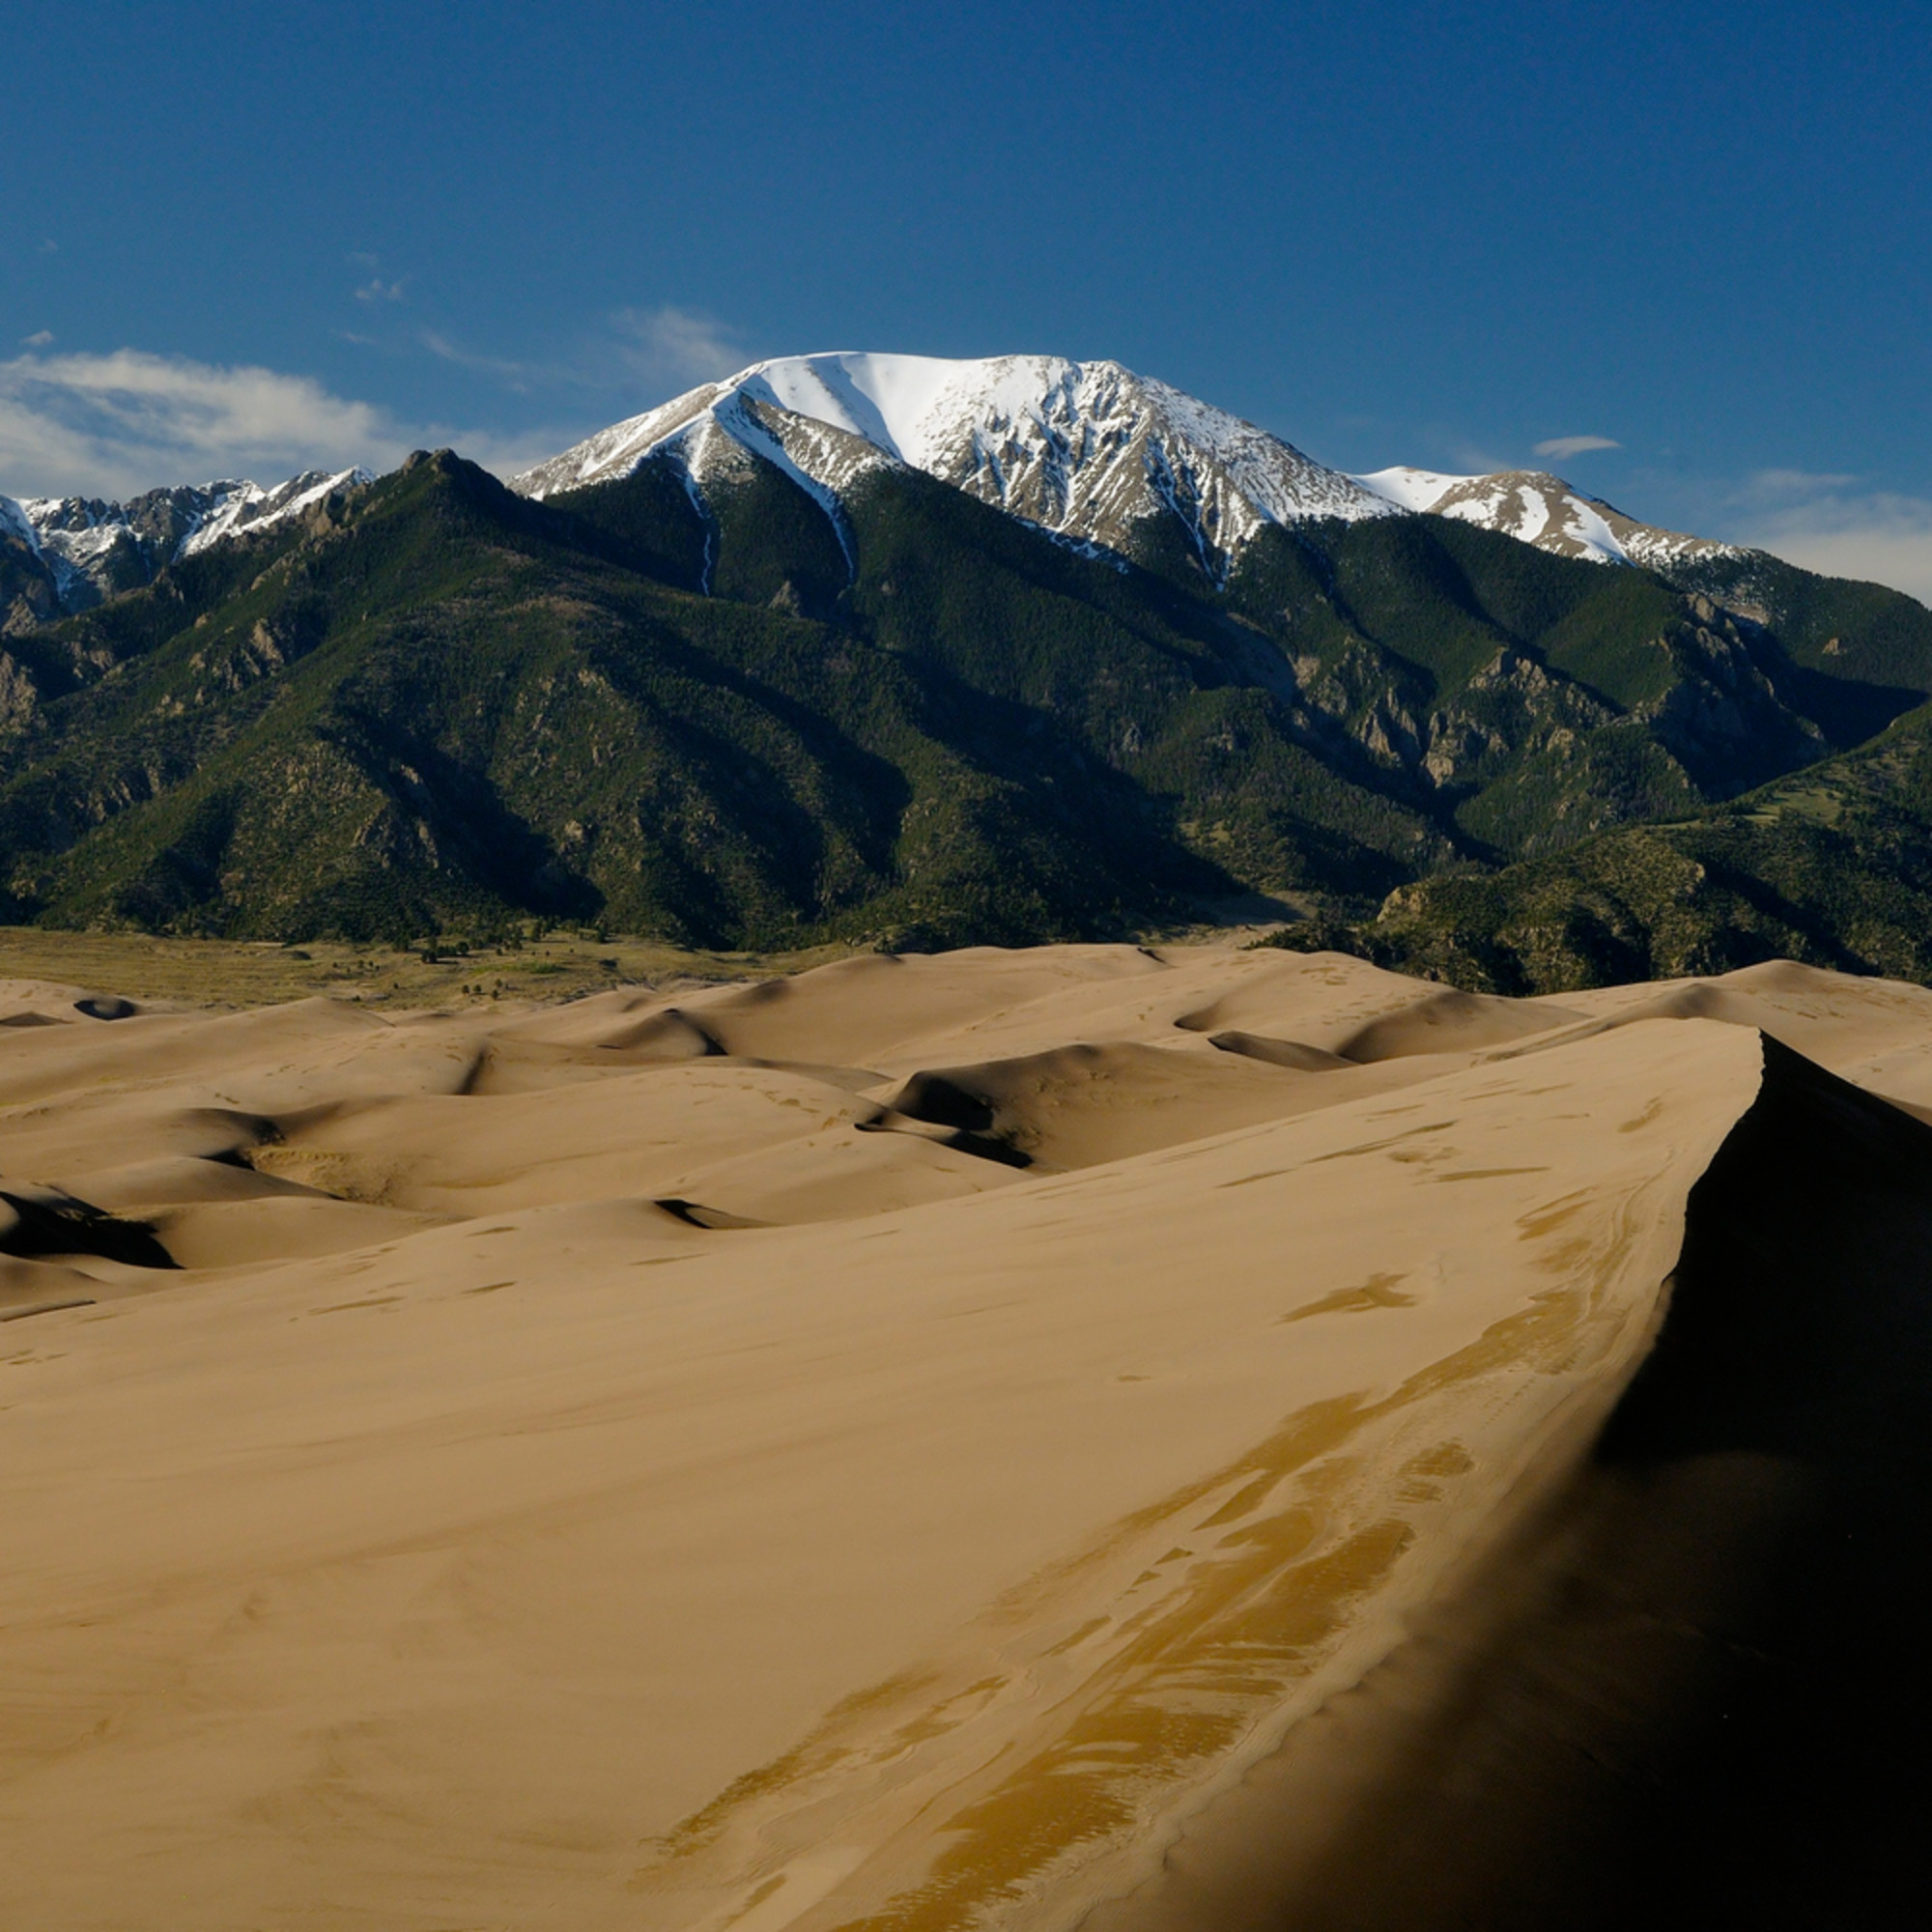 Mount herard from high dune 3 yphjem